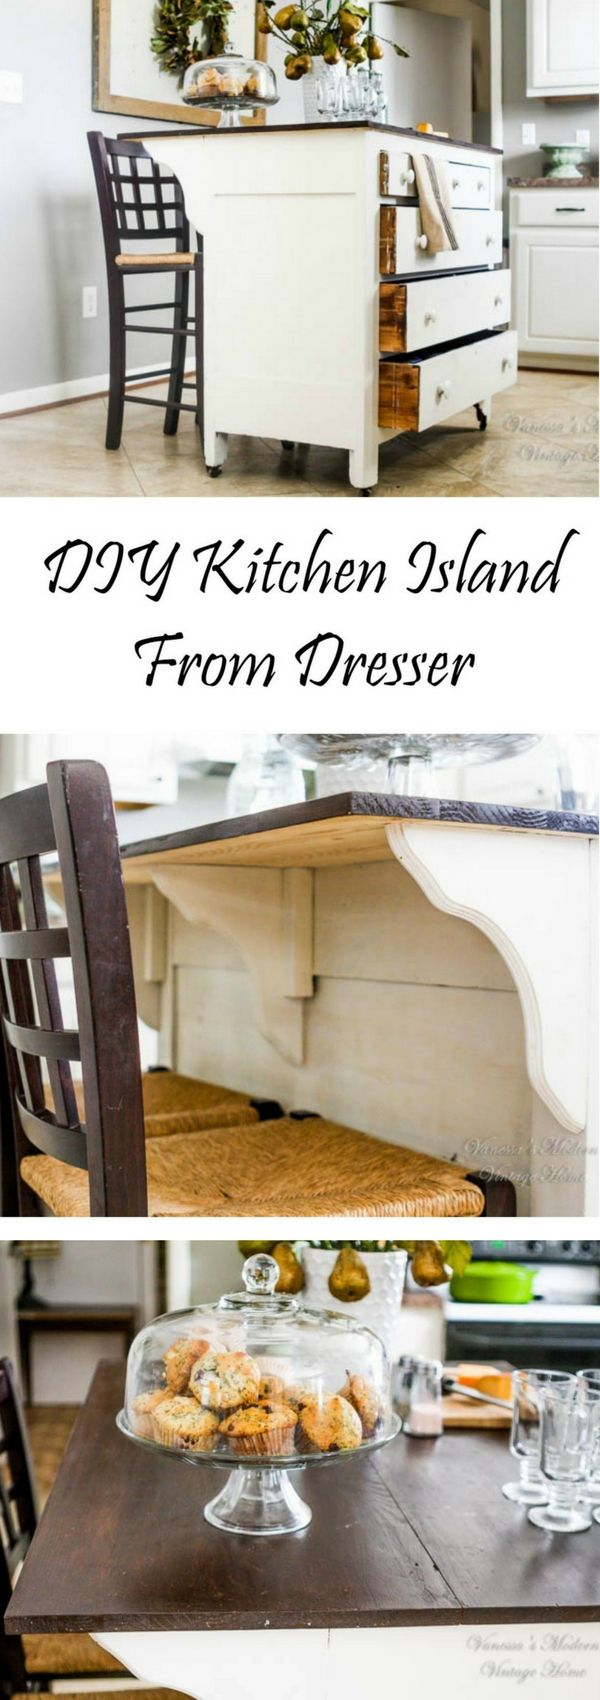 Check out the tutorial on how to build a DIY kitchen island from a dresser @istandarddesign